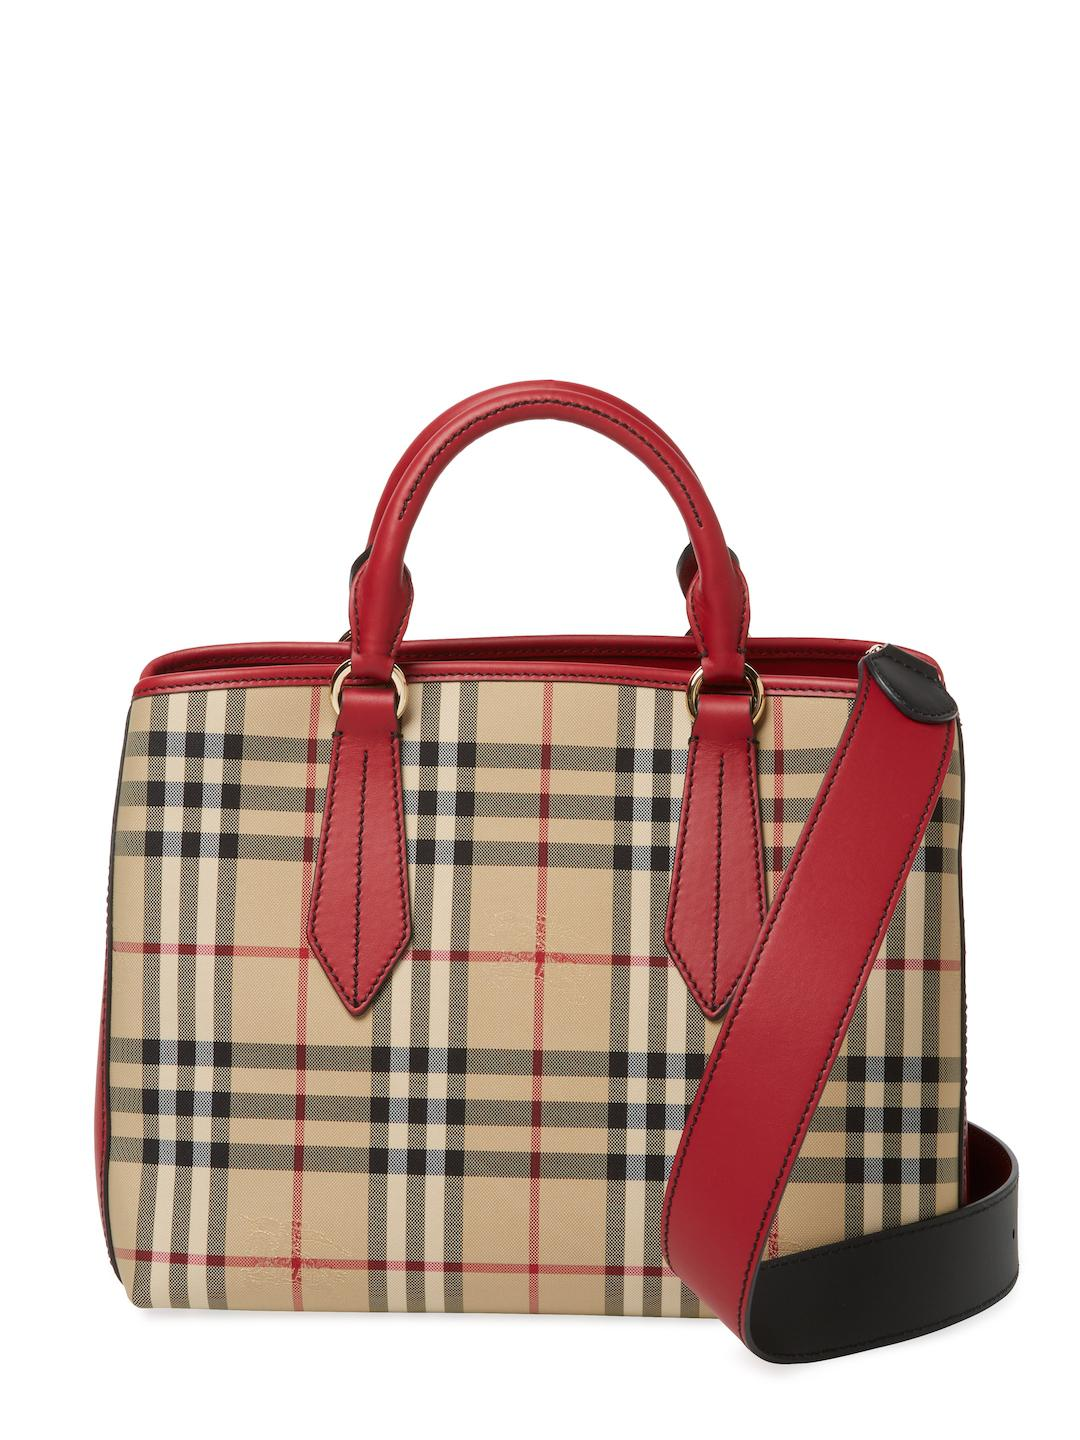 6c8efadd9810 Lyst - Burberry Ballingdon Horseferry Check Tote in Red